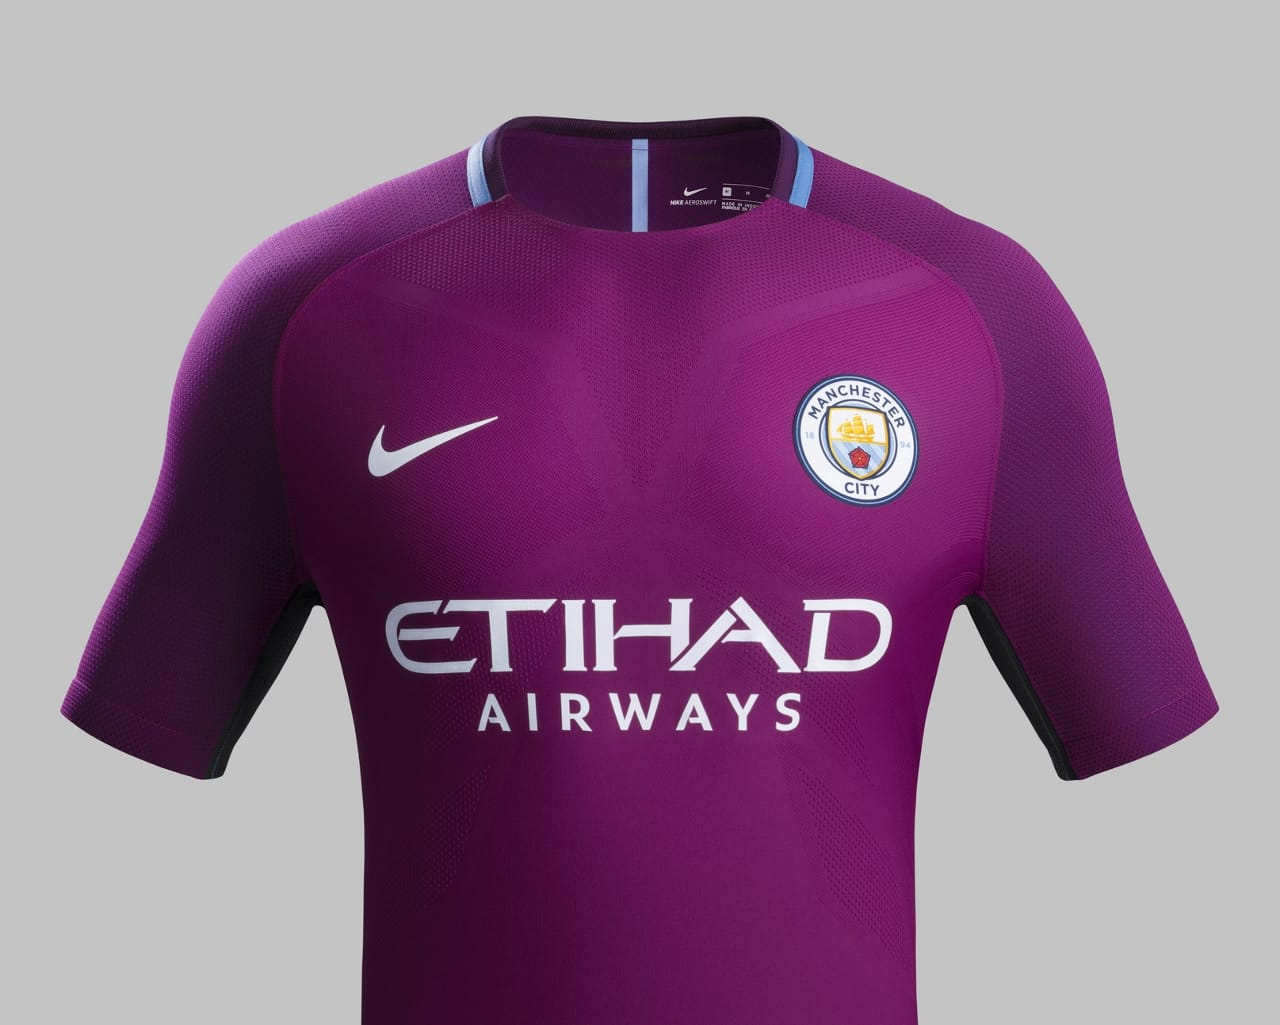 maillot-football-Nike-Manchester-City-away-2017-2018-img7 (1280x1025)